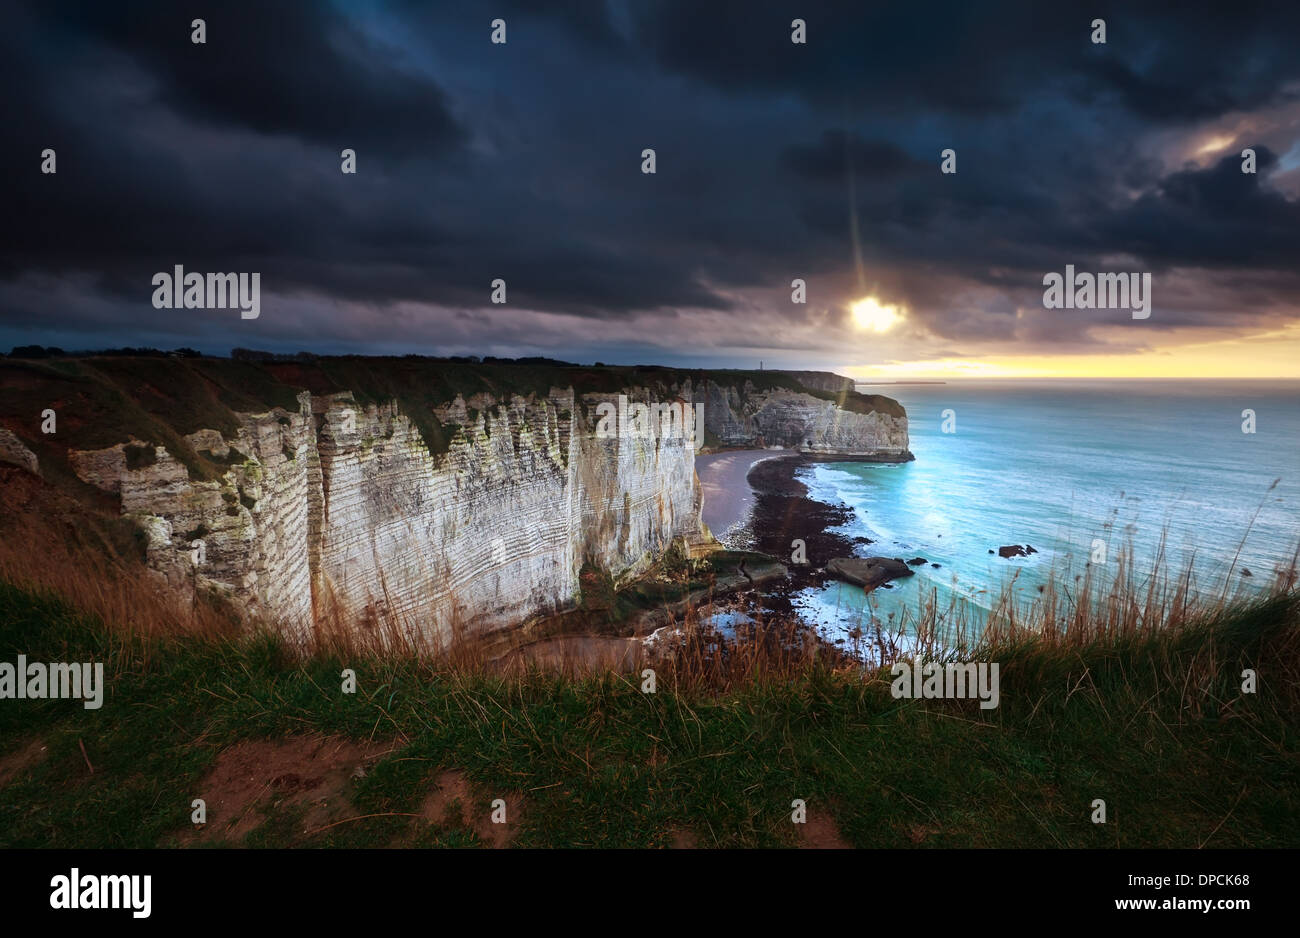 sunshine and storm sky over cliffs in ocean, Etretat, France - Stock Image